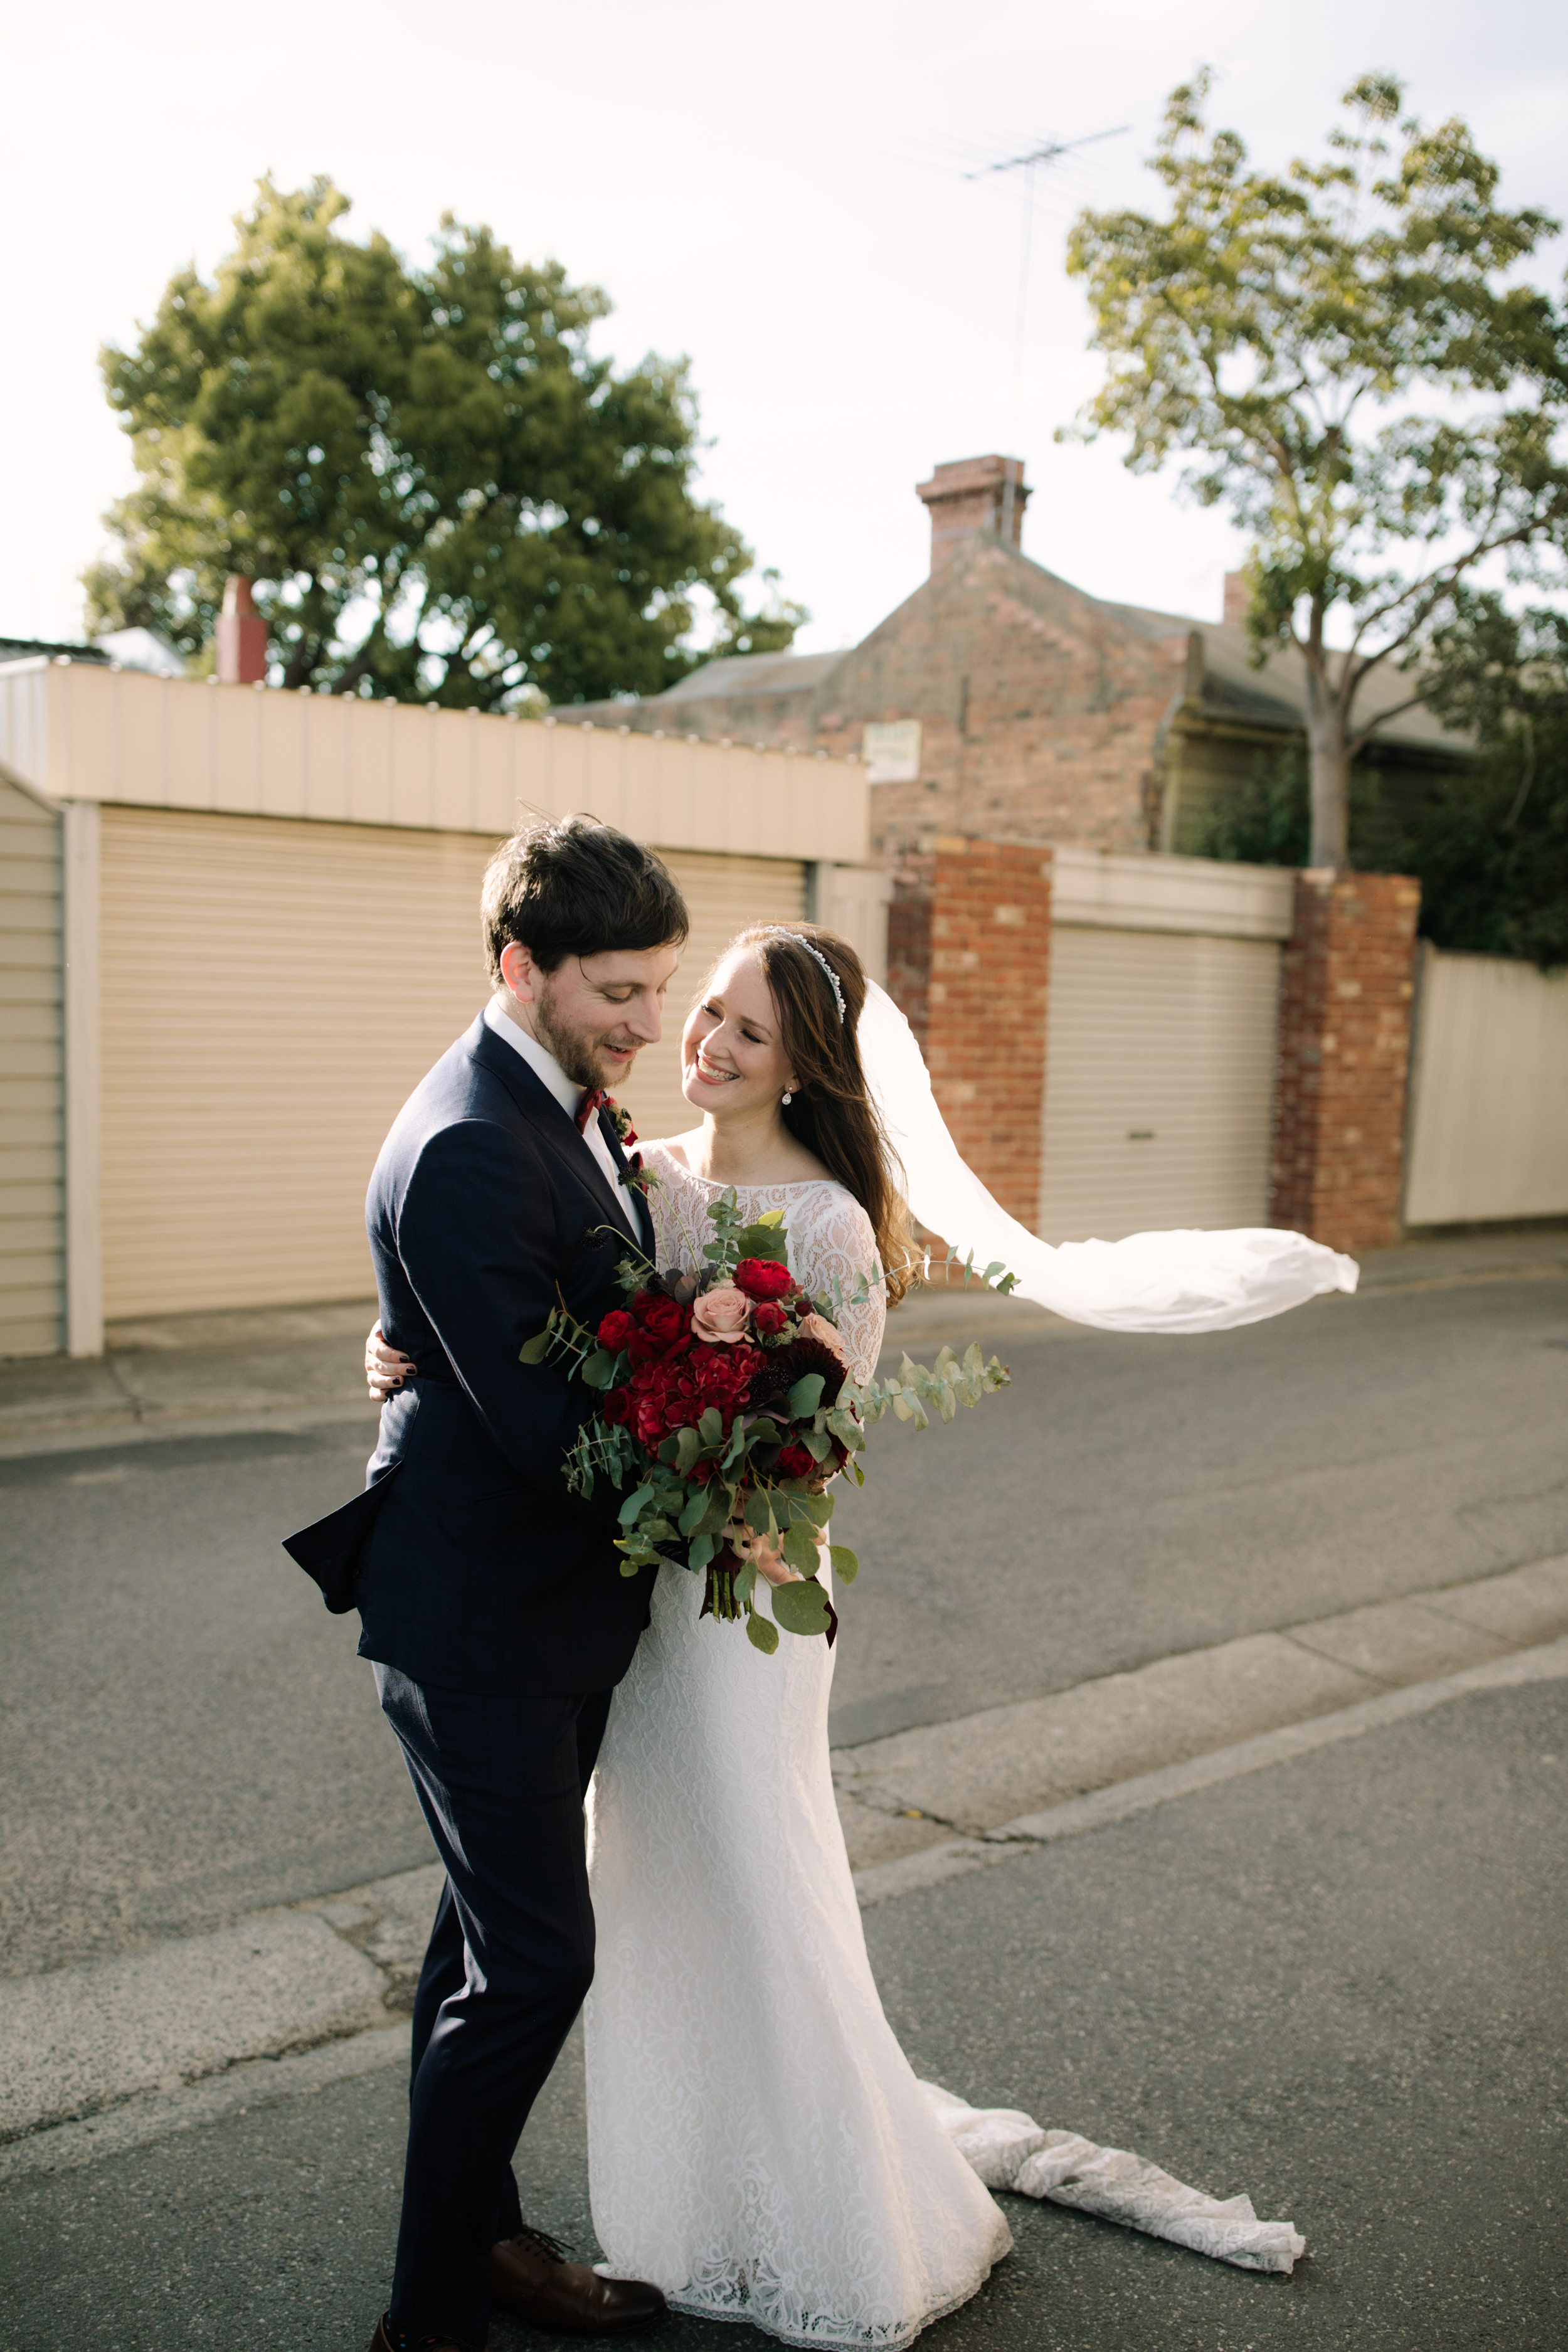 I_Got_You_Babe_Weddings_Emily_Matt_Rupert_Glasshaus_Melbourne0125.JPG